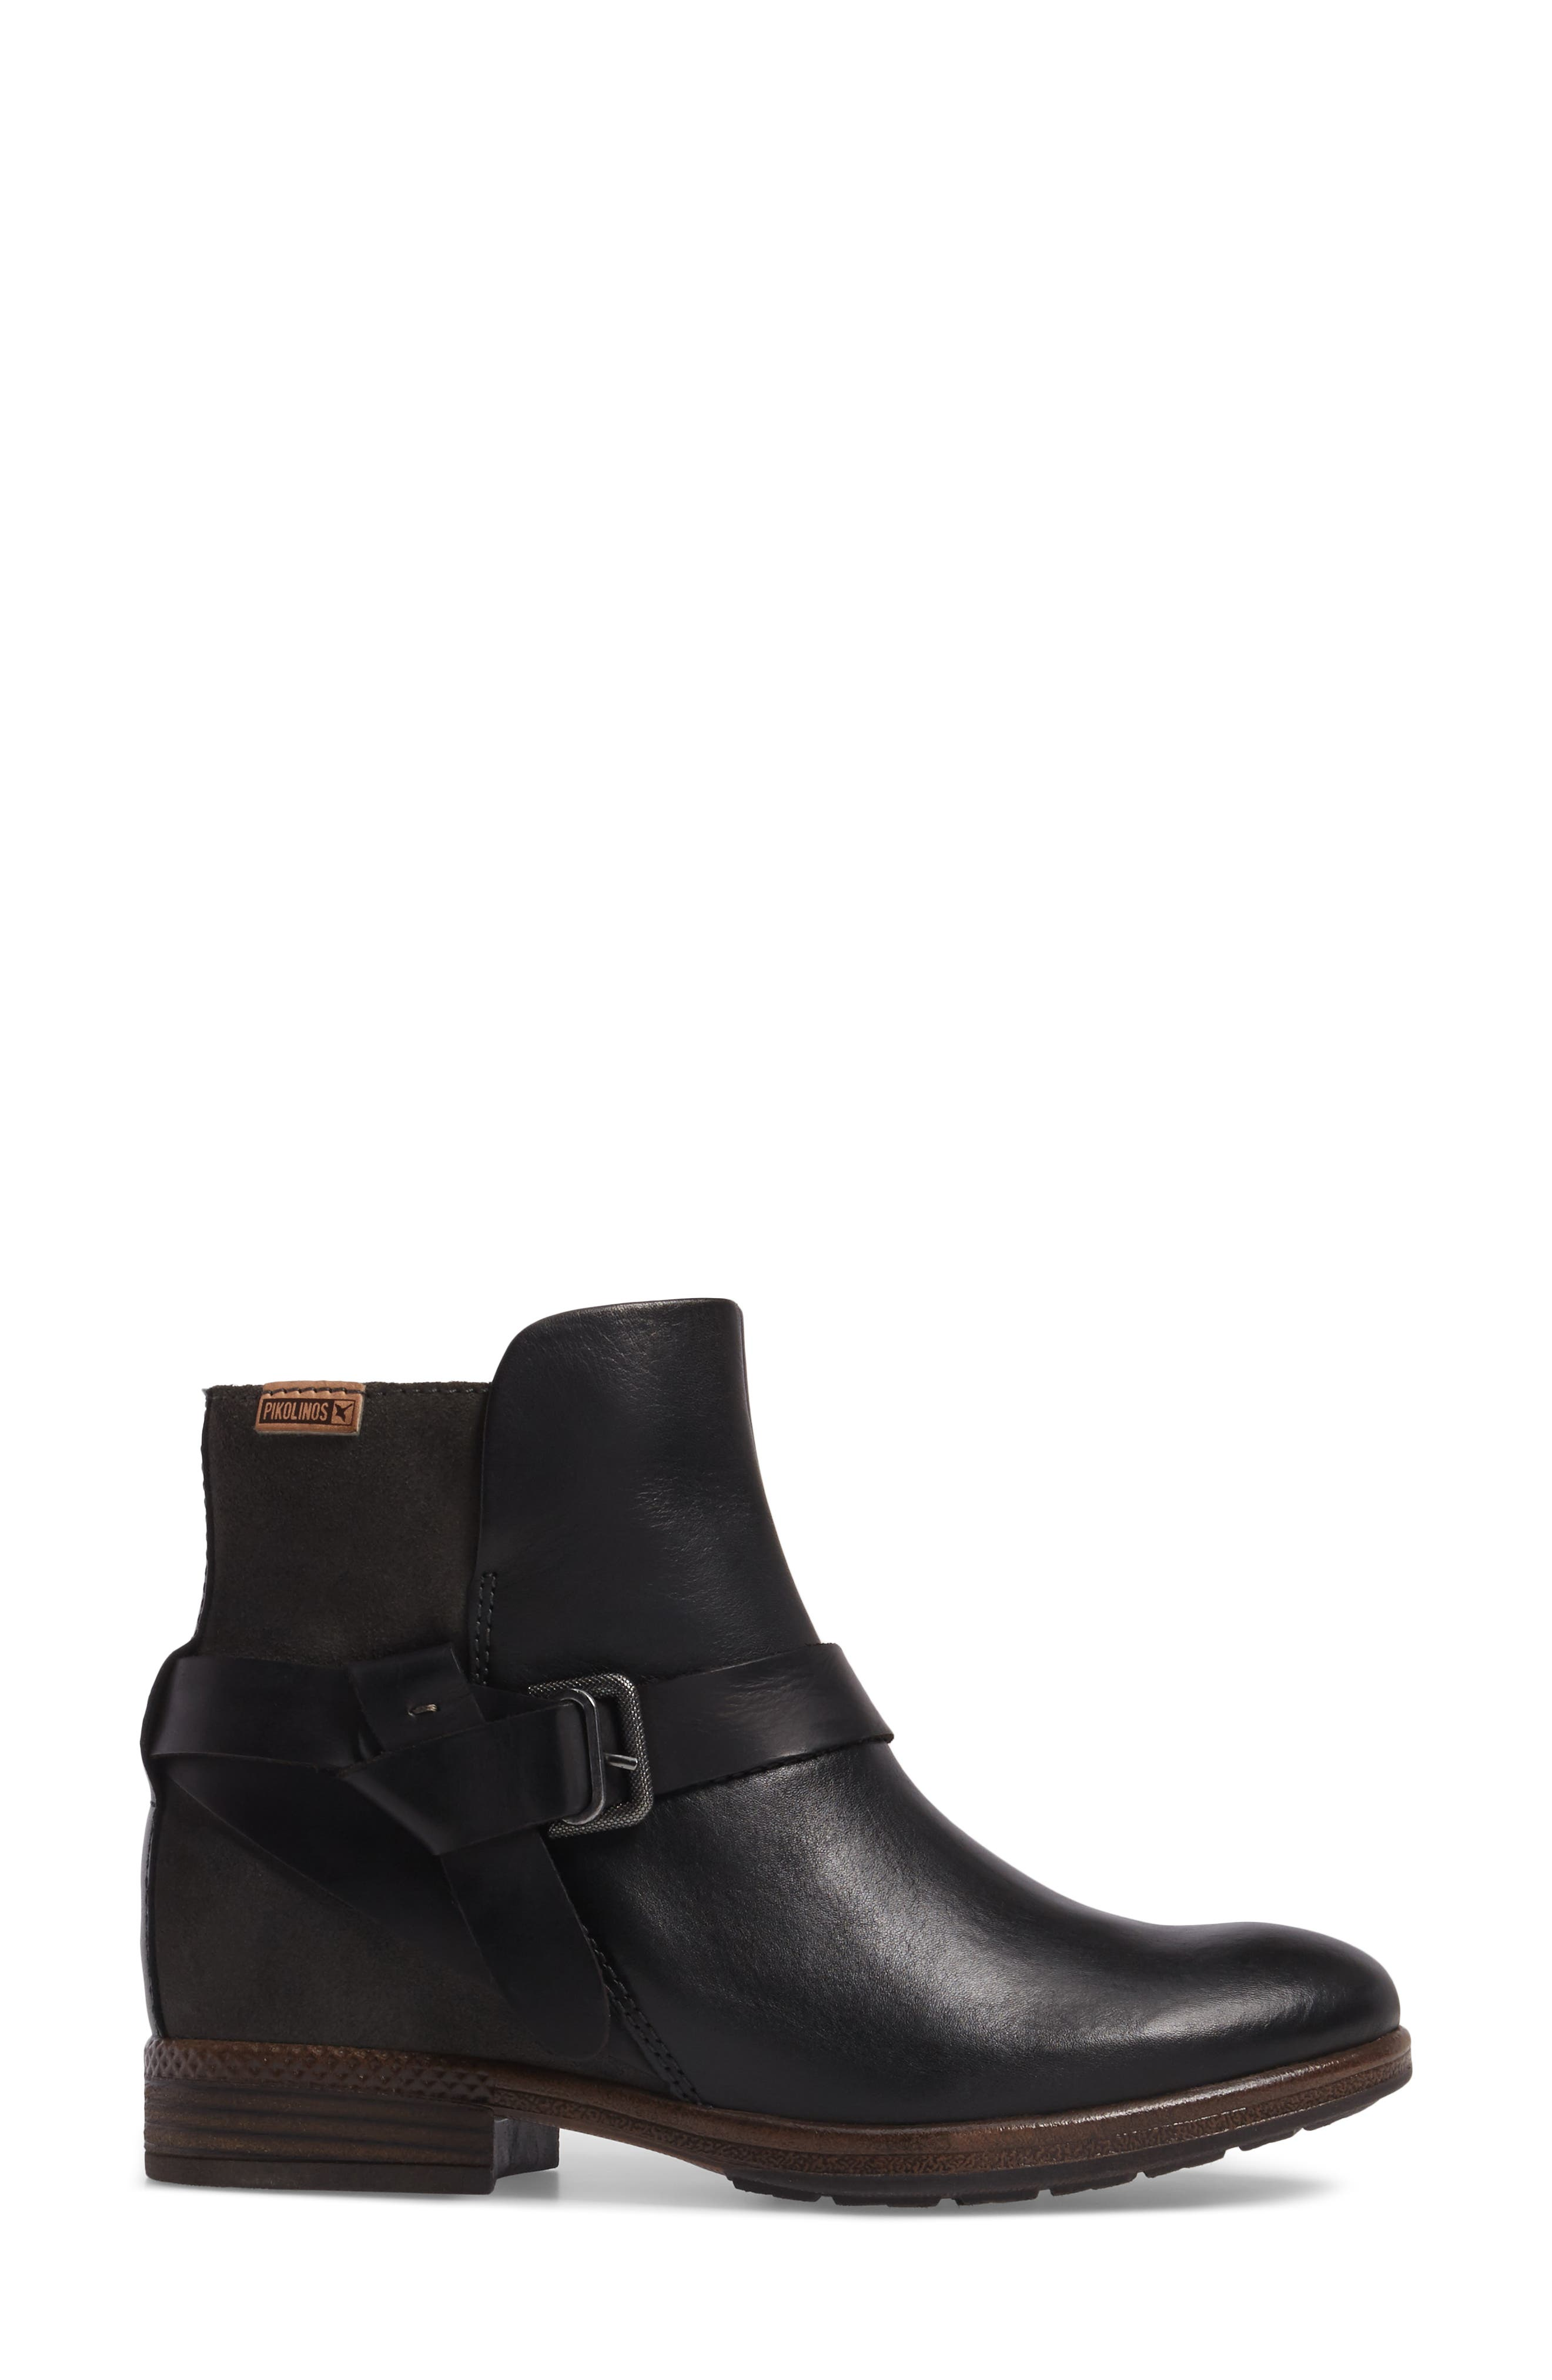 Ordino Bootie,                             Alternate thumbnail 3, color,                             Black Lead Leather